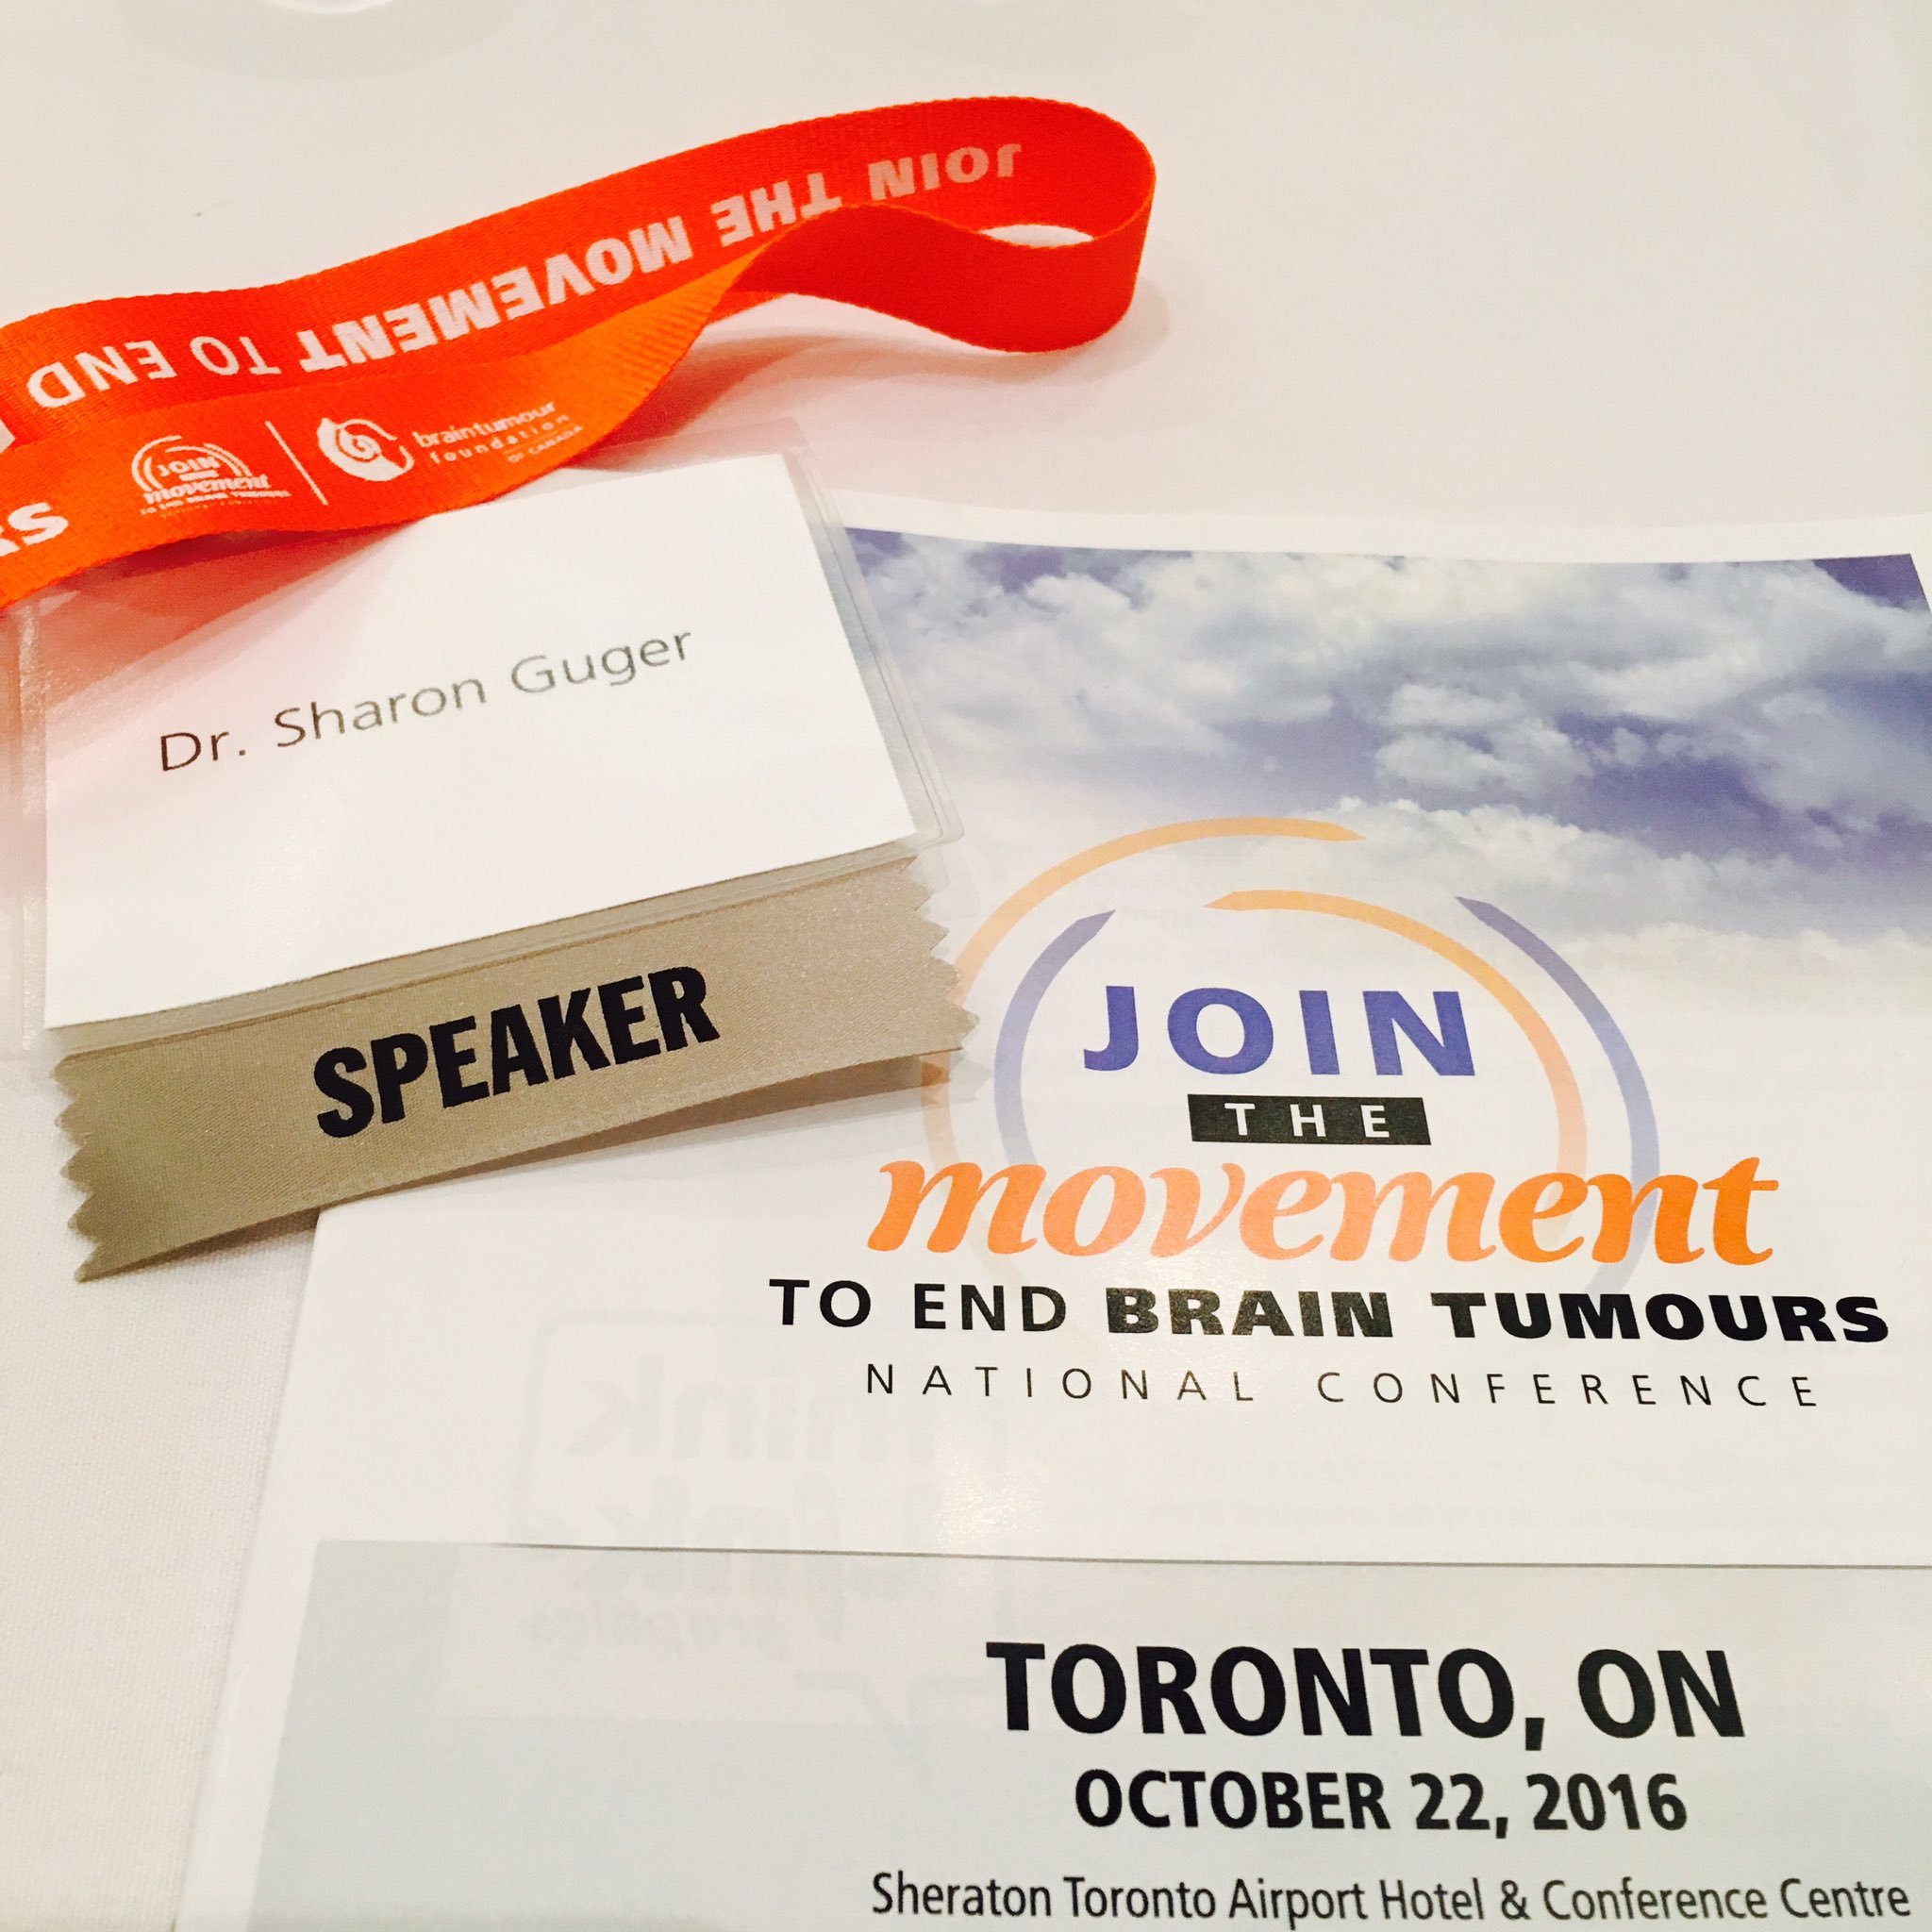 Great start at @BrainTumourFdn National conference. Excited & inspired... https://t.co/h1D1AHJ2ri